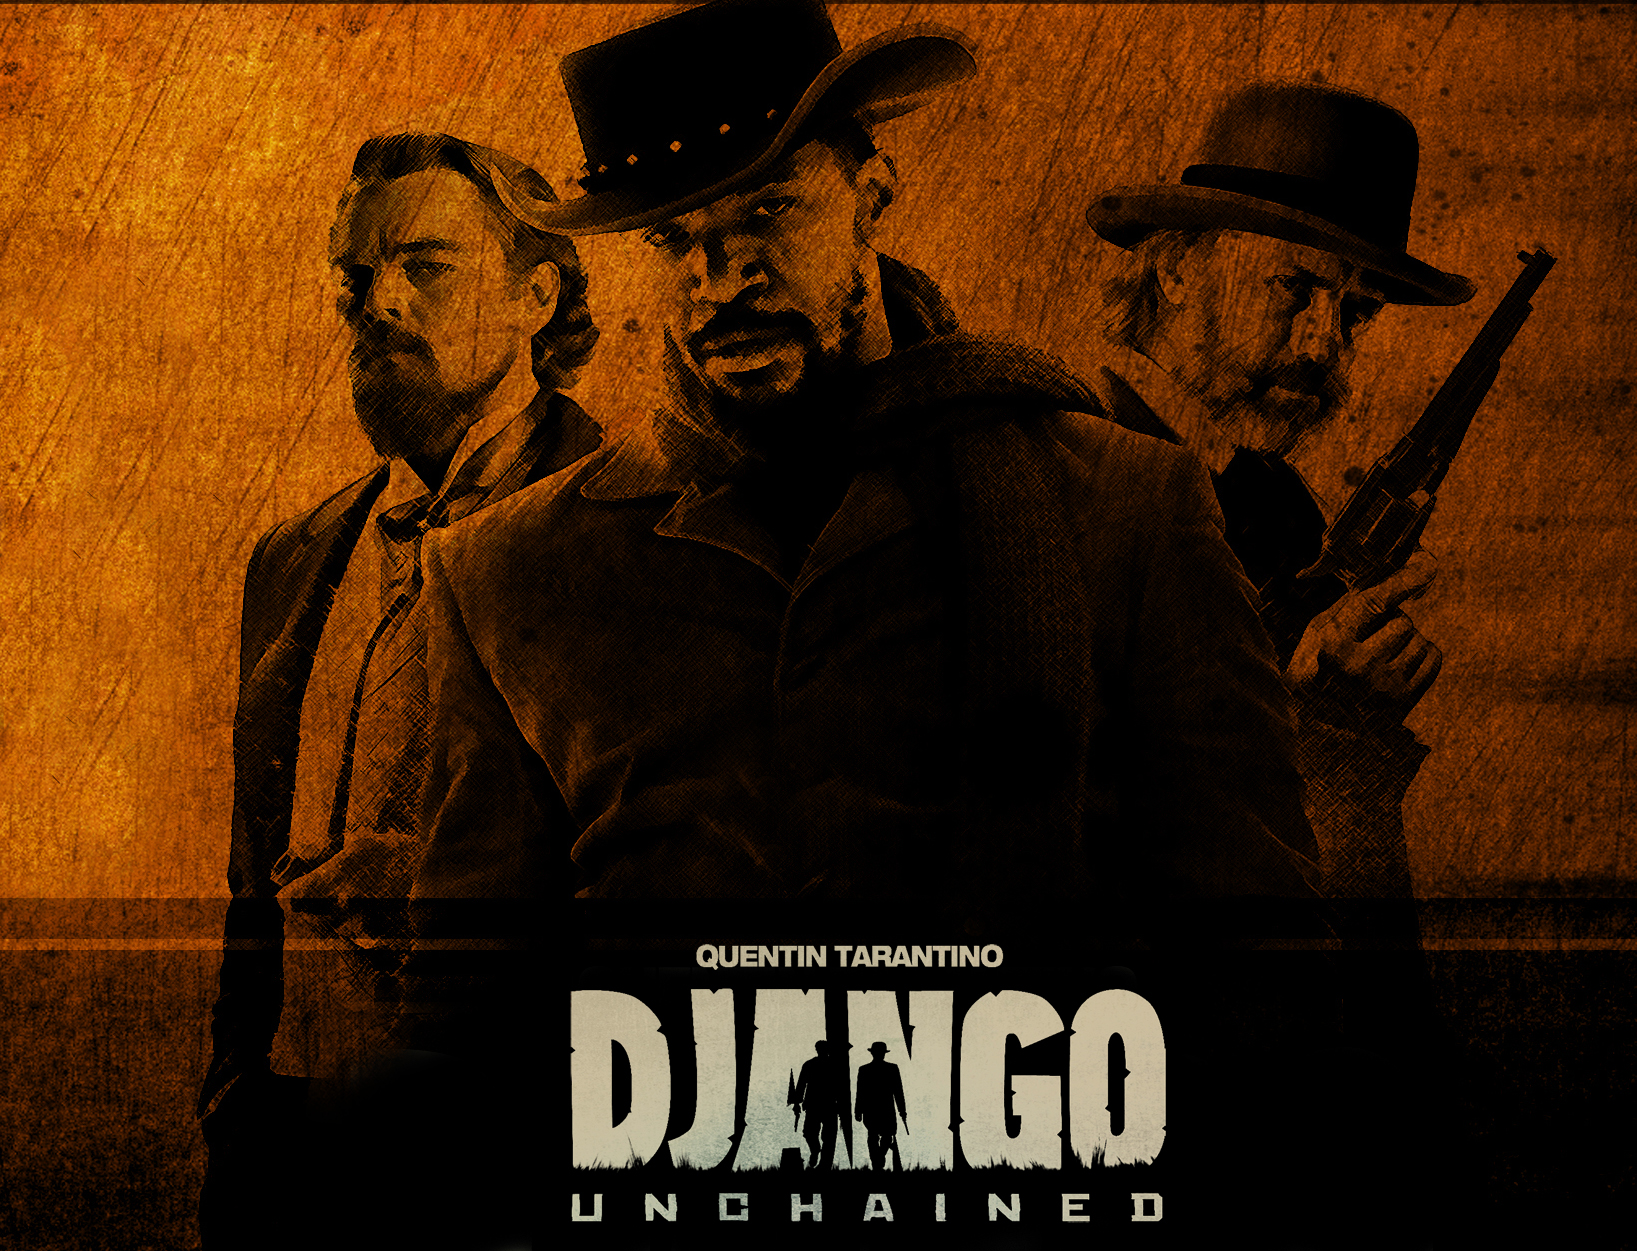 a review of django unchained a movie by quentin tarantino Quentin tarantino has devoted the last decade to meticulously crafting enormously satisfying b-movie revenge fantasies for sexy women (kill bill, death proof), jews (inglourious basterds) and now, with his explosive slavery-themed western django unchained, african-americans.